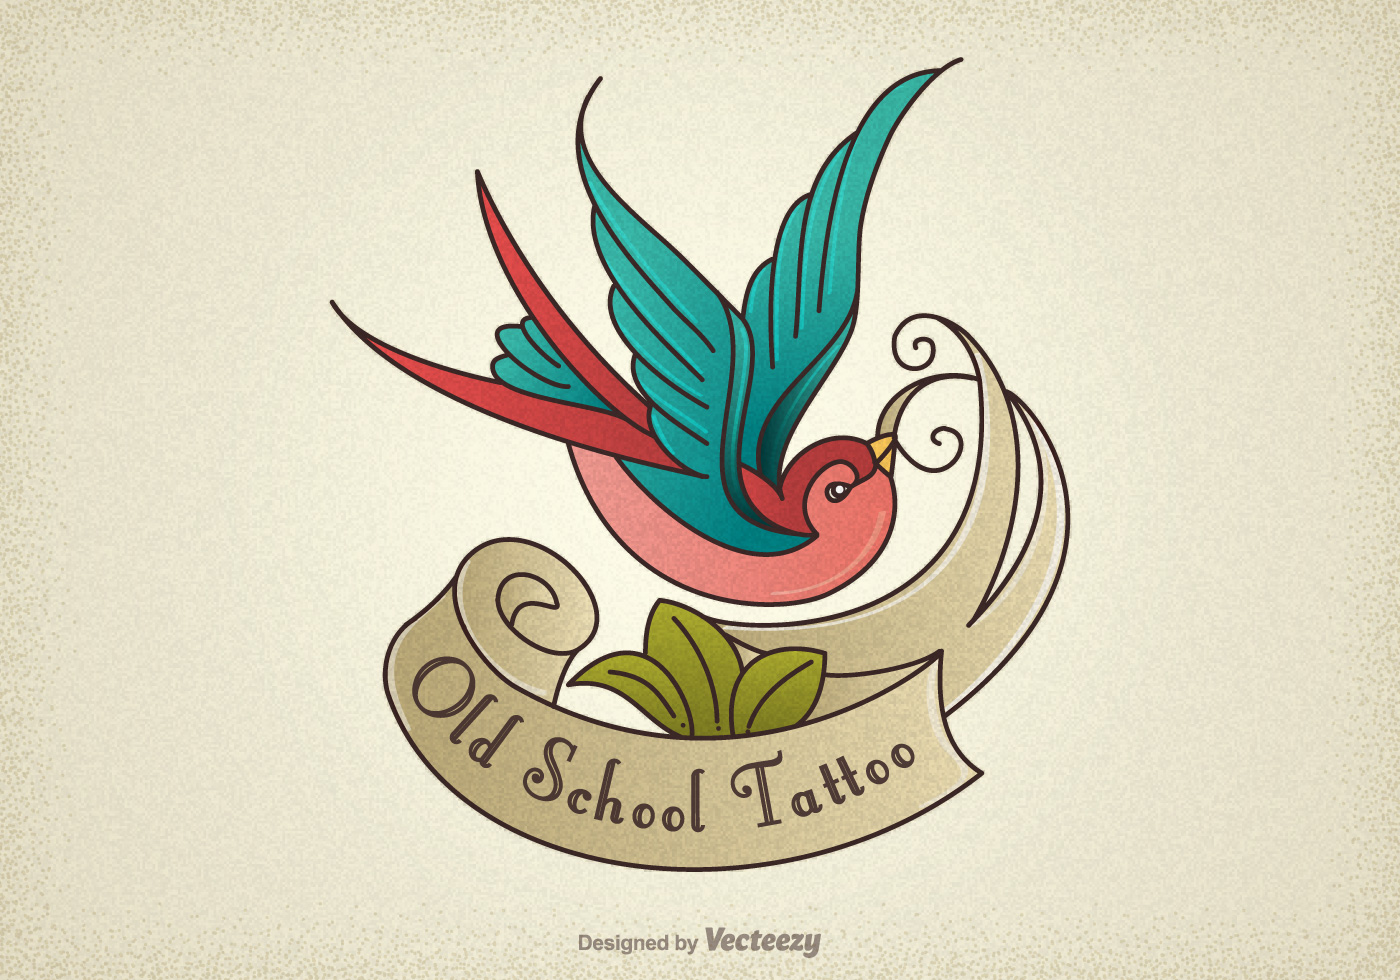 old school tattoo swallow vector download free vector art stock graphics images. Black Bedroom Furniture Sets. Home Design Ideas